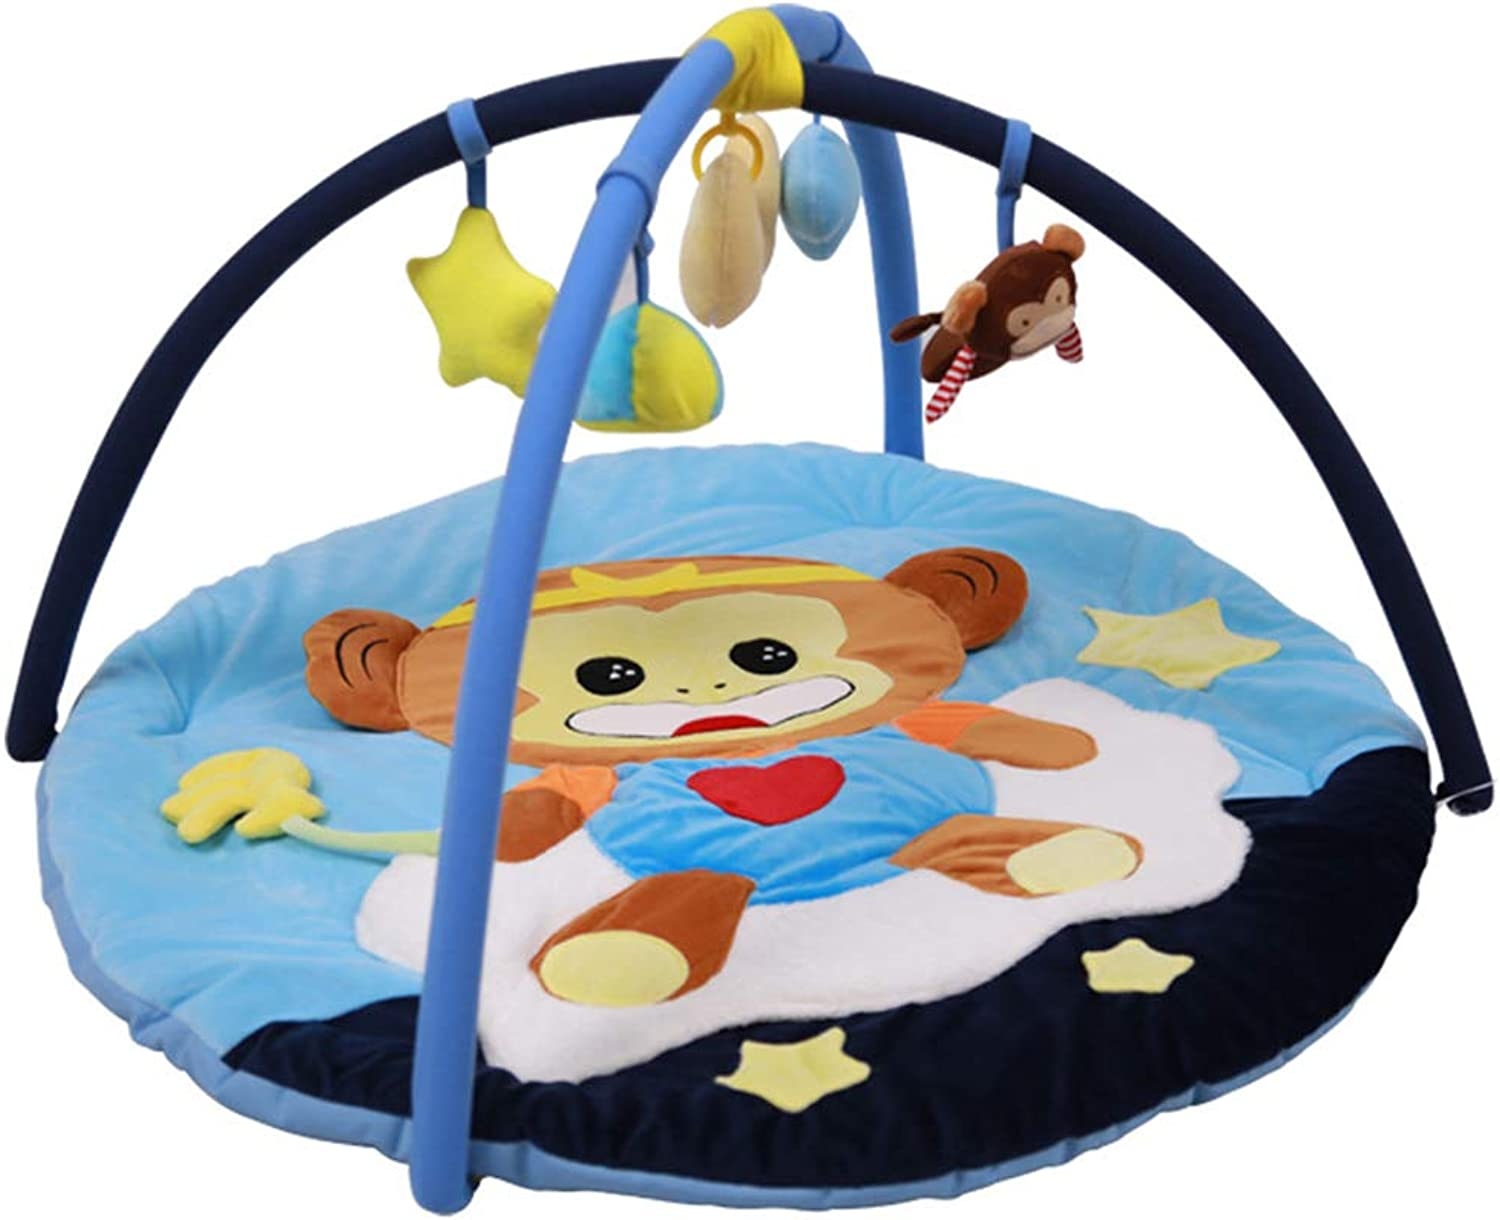 Bedside guardrail Portable Baby Game Pad, Environmentally Safe Baby Fitness Frame Carpet Educational Toy, Round Travel Game Pad, Suitable For 01 Year Old Baby